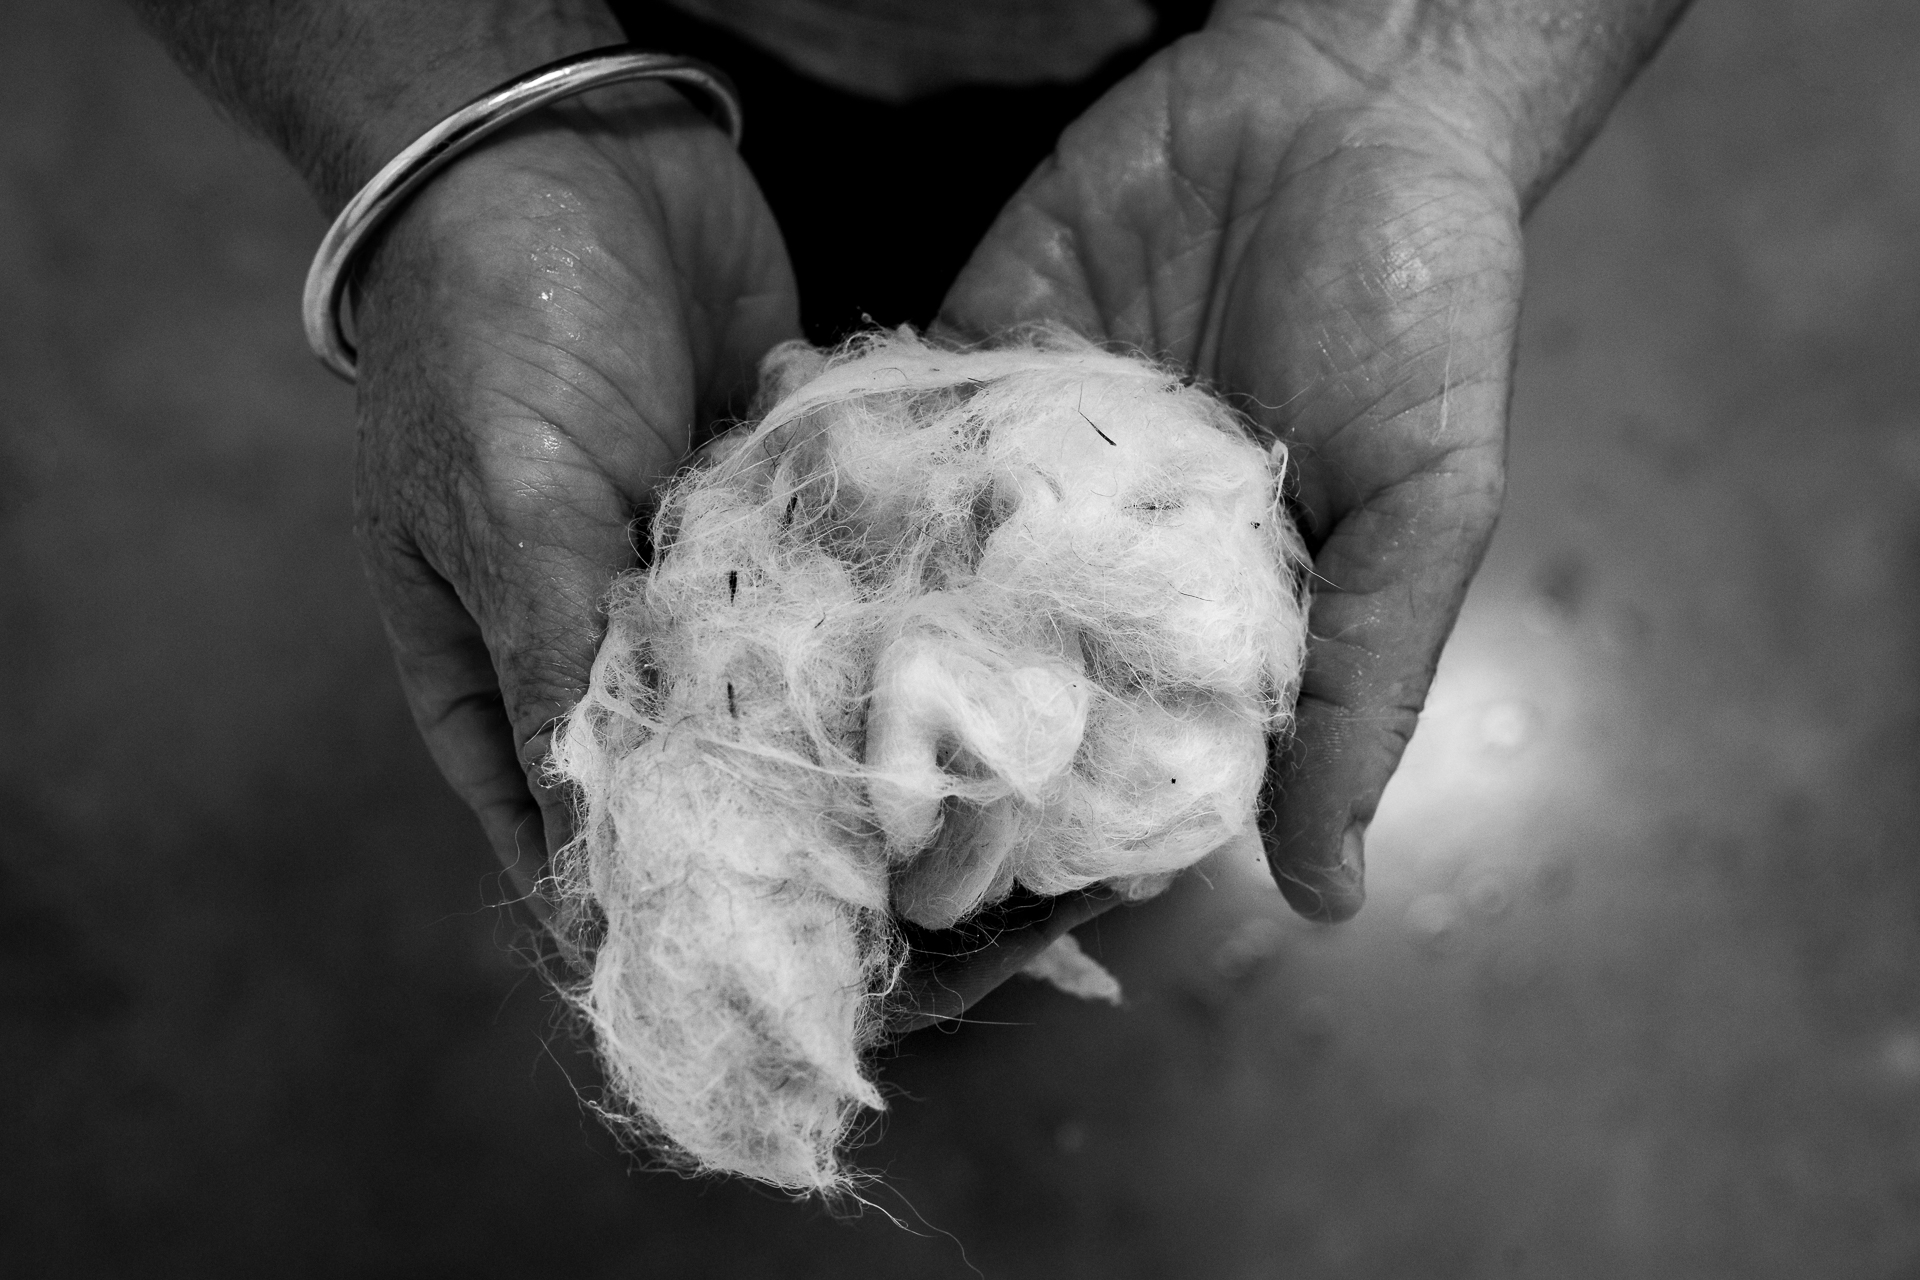 Nurse/Groomer Maree Watt shows some of the fur that has come off during the grooming of a large dog, Ghost. Included are a few grass seeds, the nemeses of long-haired dogs.  24 January, 2018.